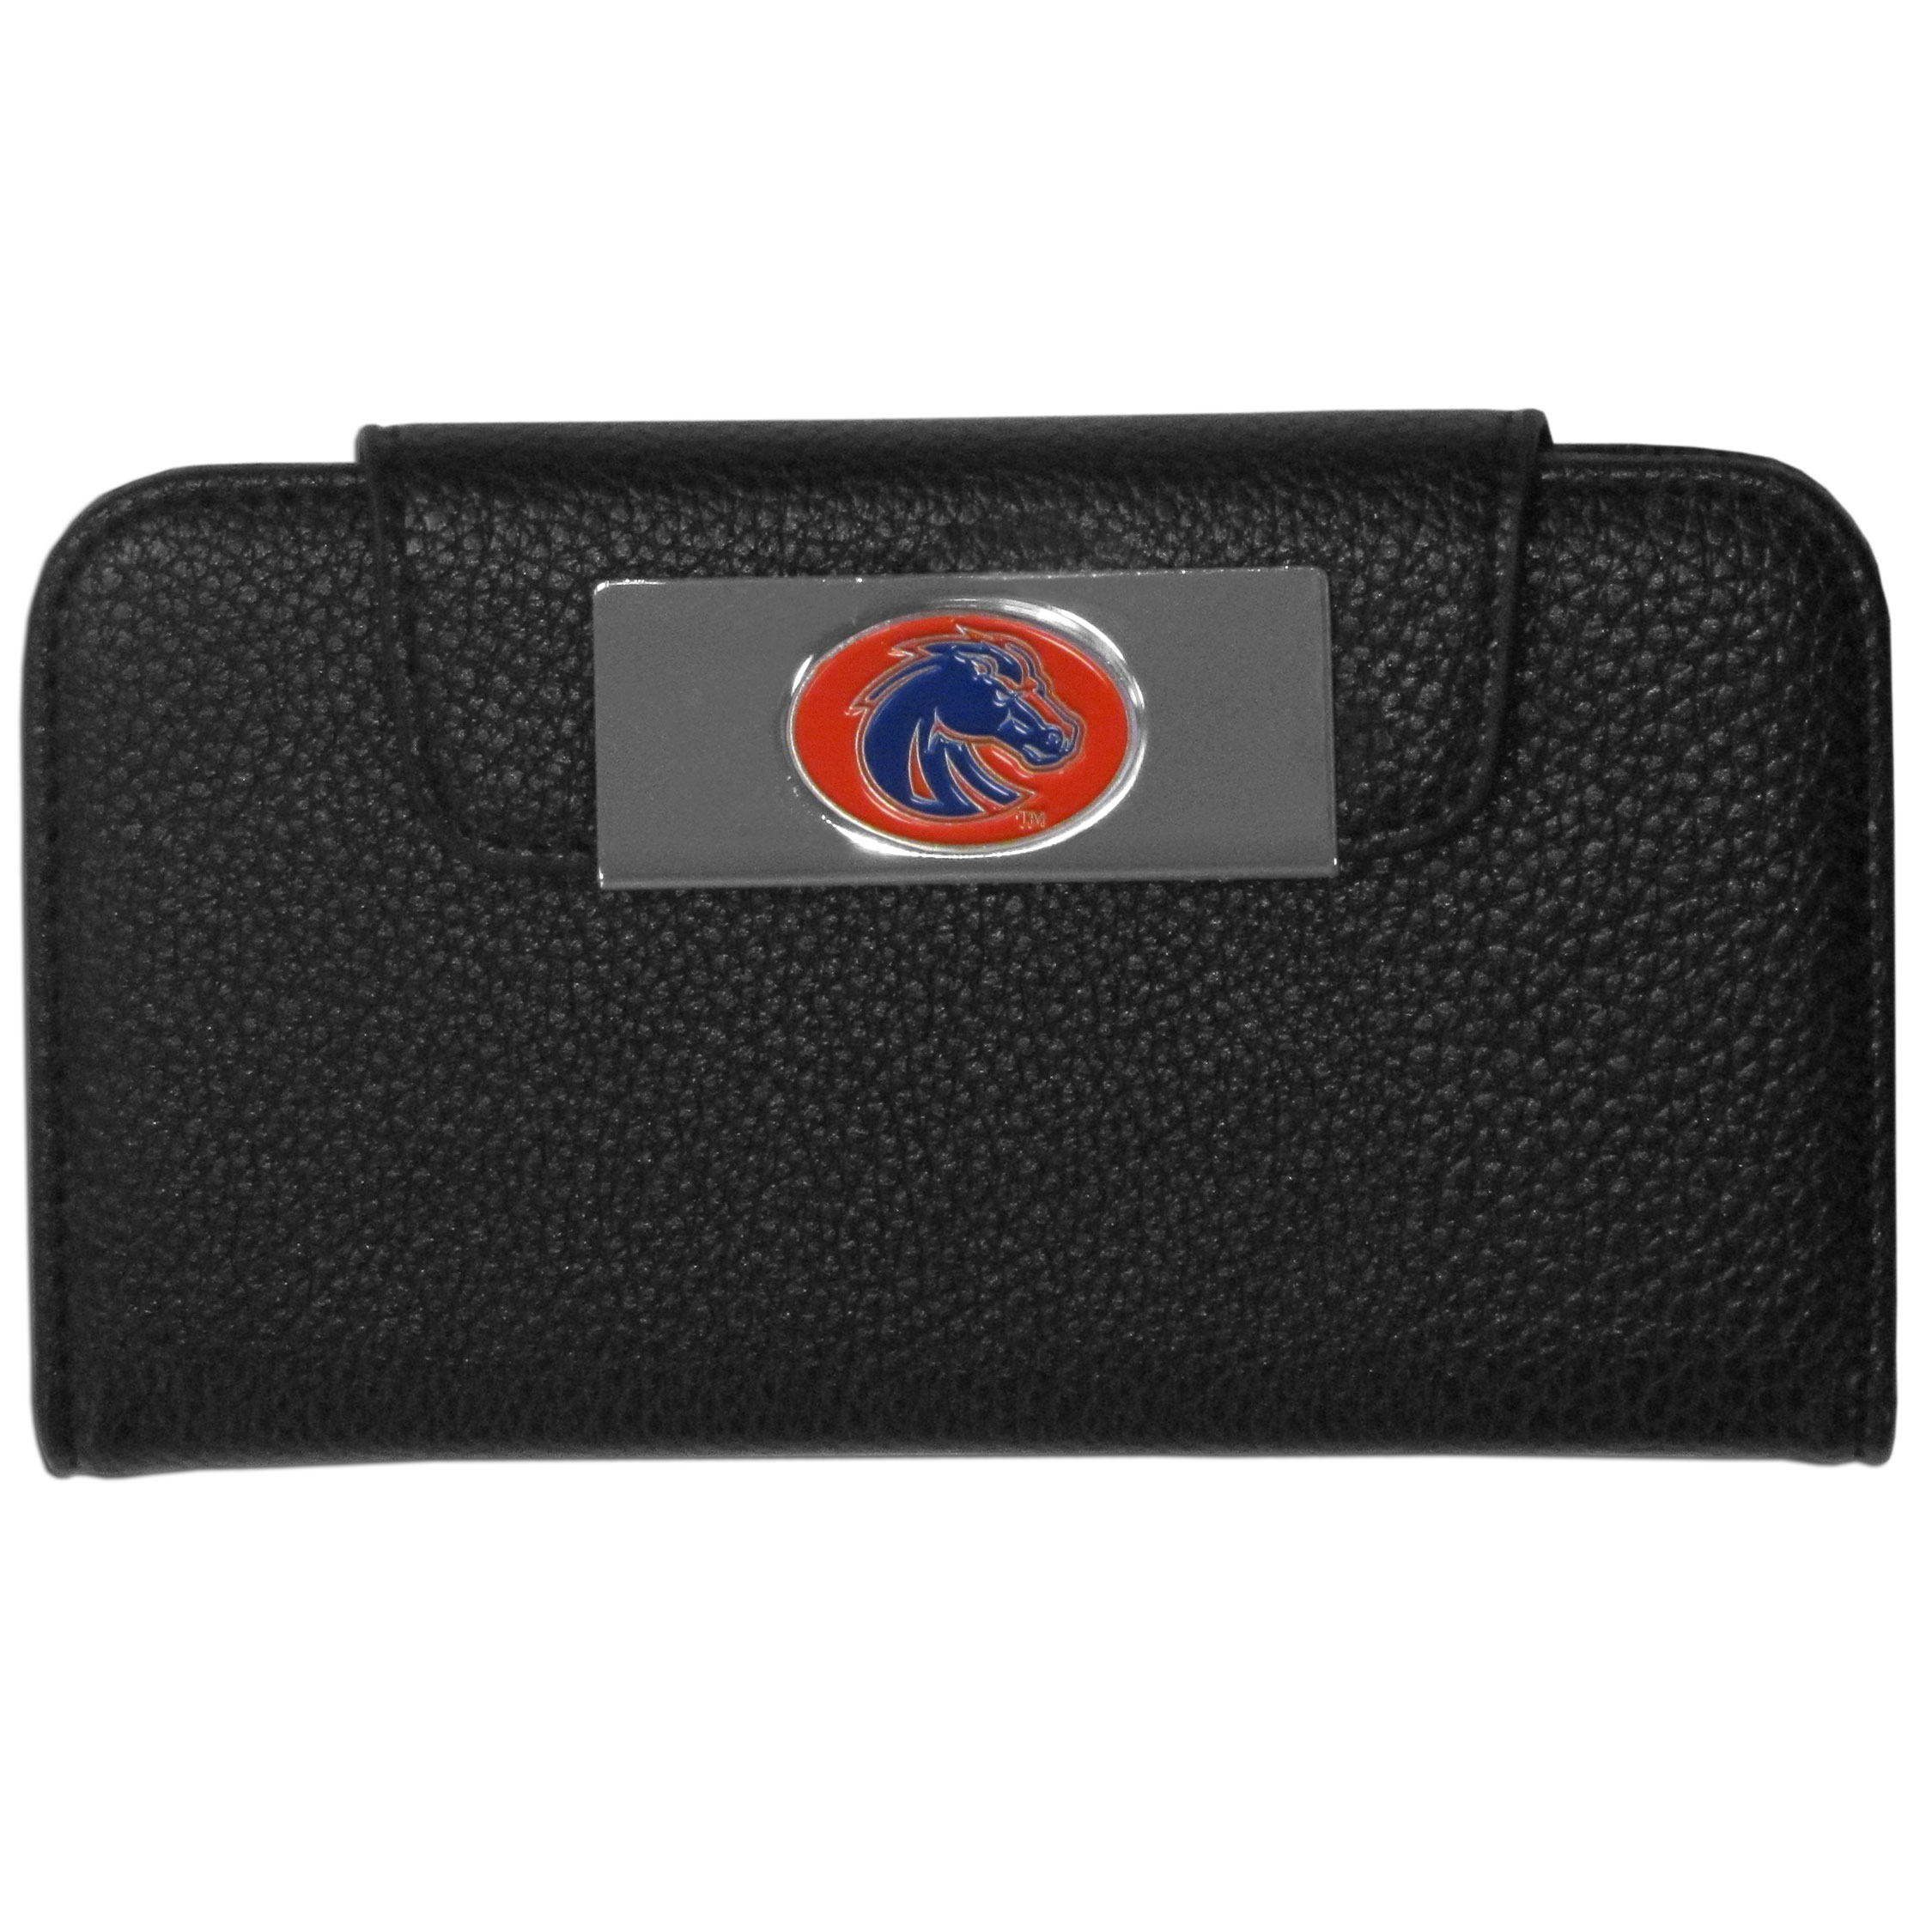 Boise St. Broncos Samsung Galaxy S4 Wallet Case - This new & wildly popular case is ideal for those who like to travel light! The stylish case has an inner hard shell that securely holds your phone while allowing complete access to the phone's functionality. The flip cover has slots for credit cards, business cards and identification. The magnetic flip cover has a metal Boise St. Broncos emblem on a high polish chrome backing. Fits the Samsung Galaxy S4